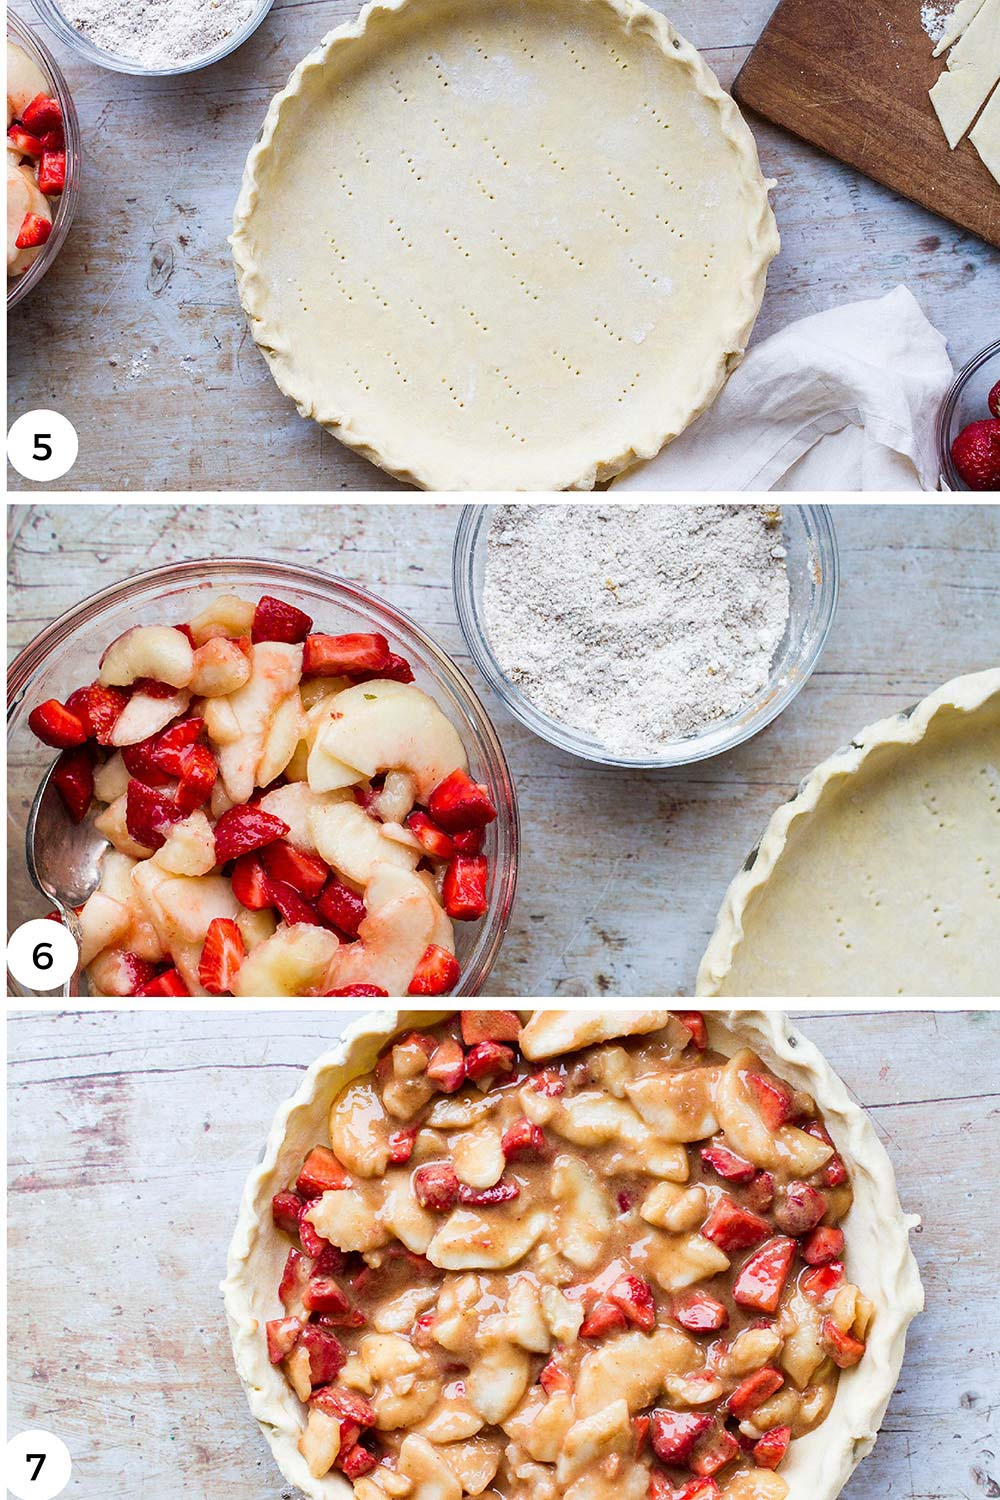 Steps to fill the pie.